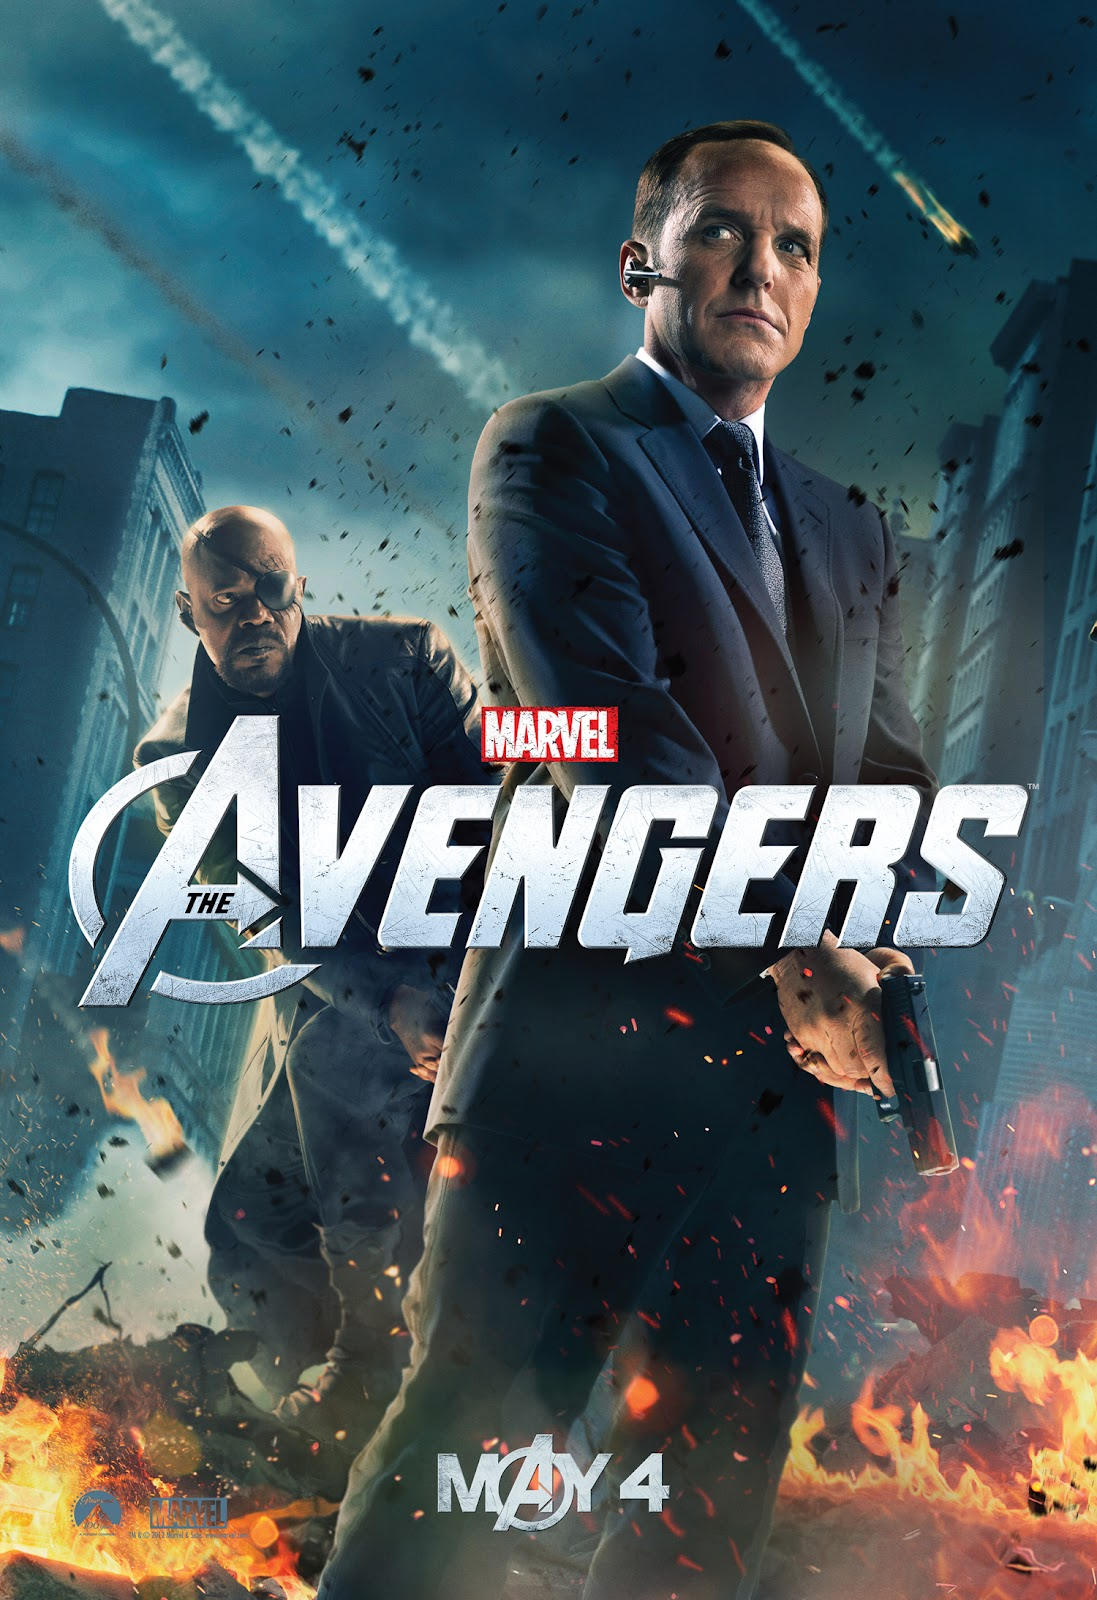 The avengers character one sheet movie posters samuel l jackson as